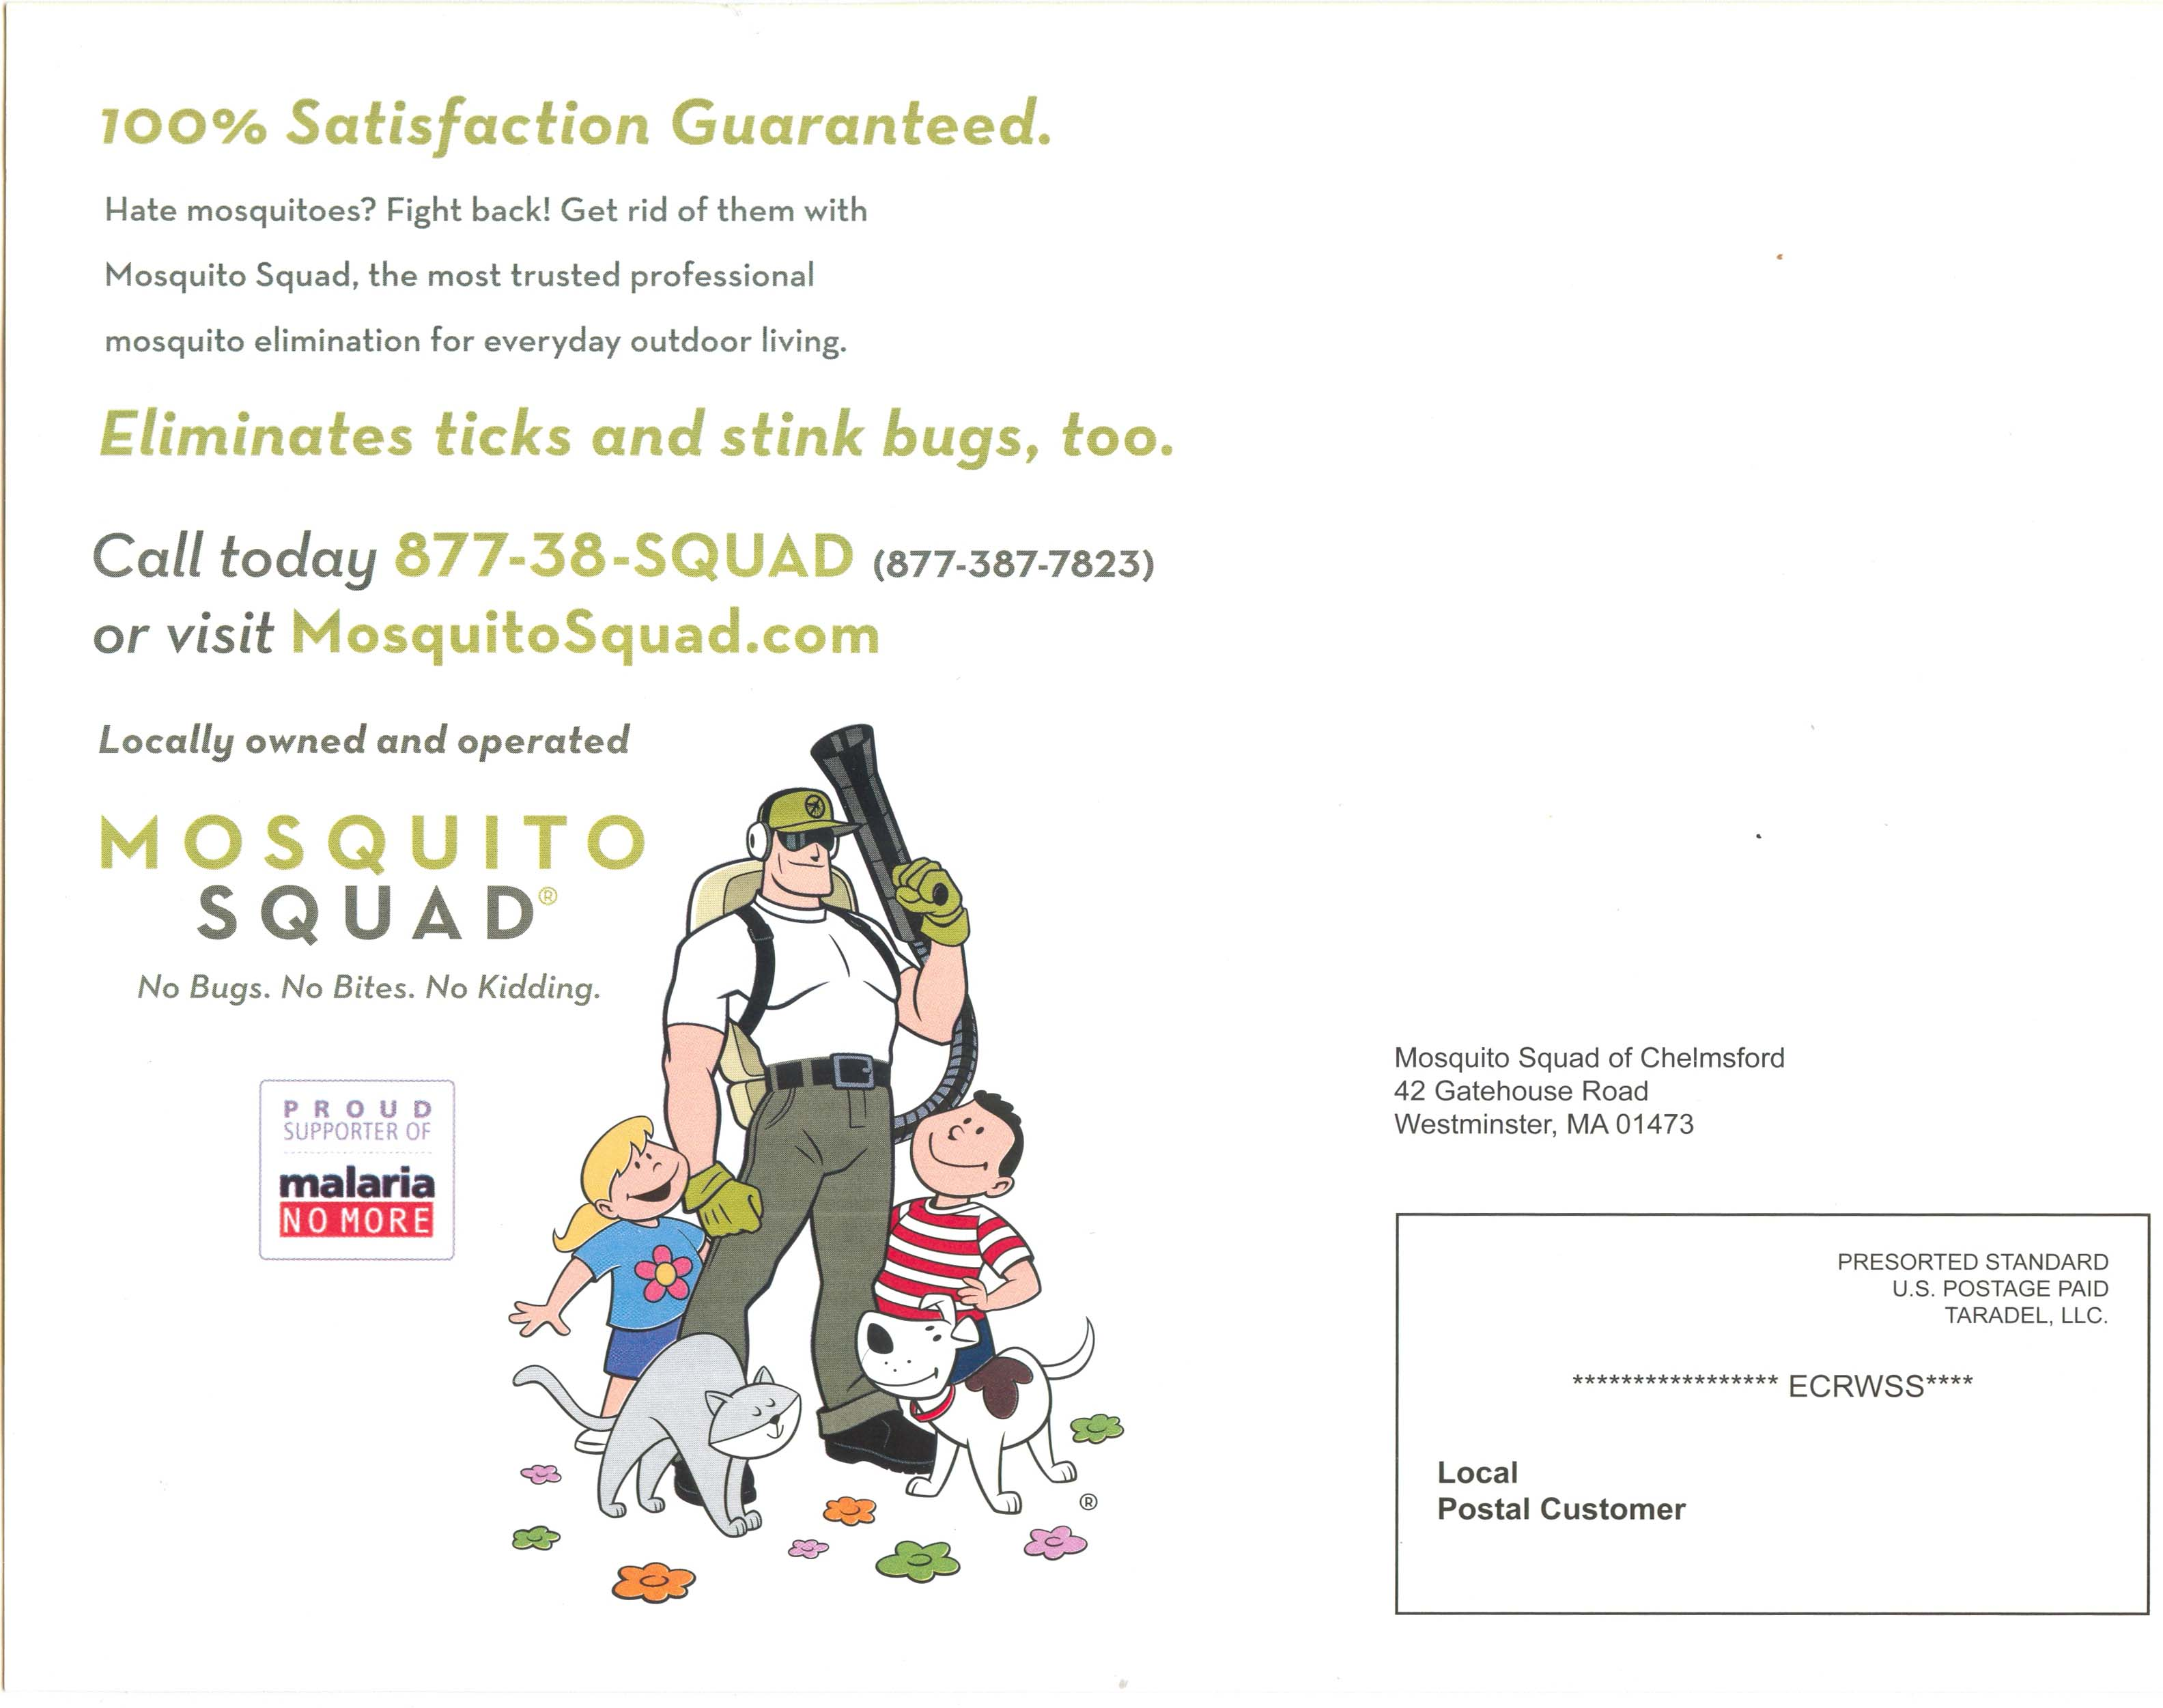 Mosquito Squad Oversized Post Card 2013 - Back